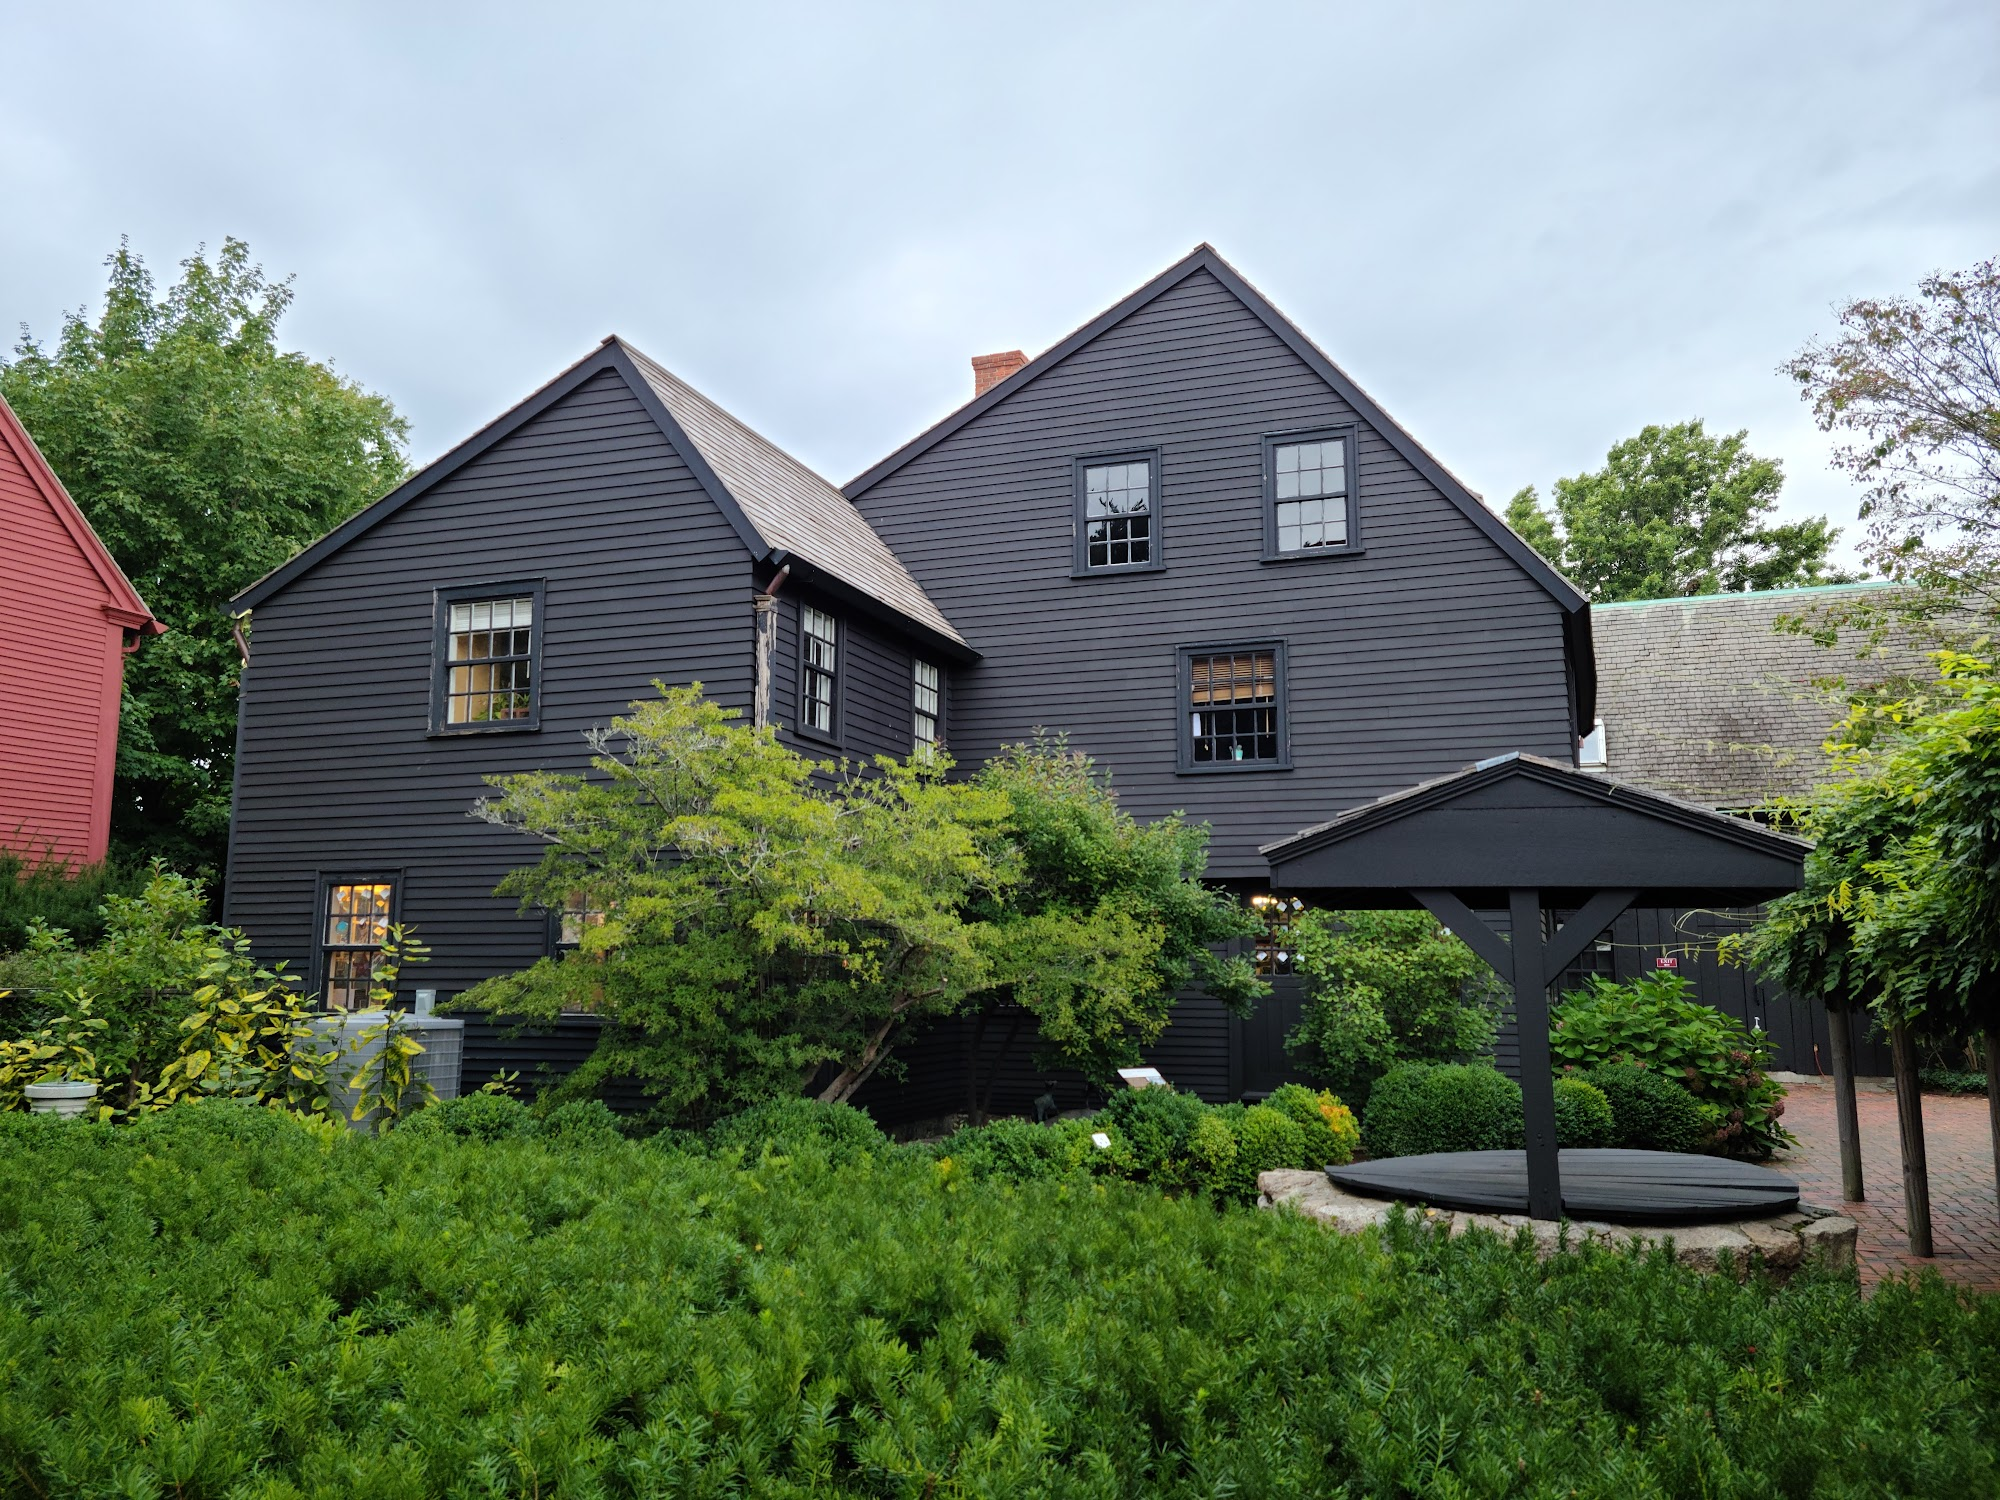 The House of the Seven Gables 115 Derby St, Salem